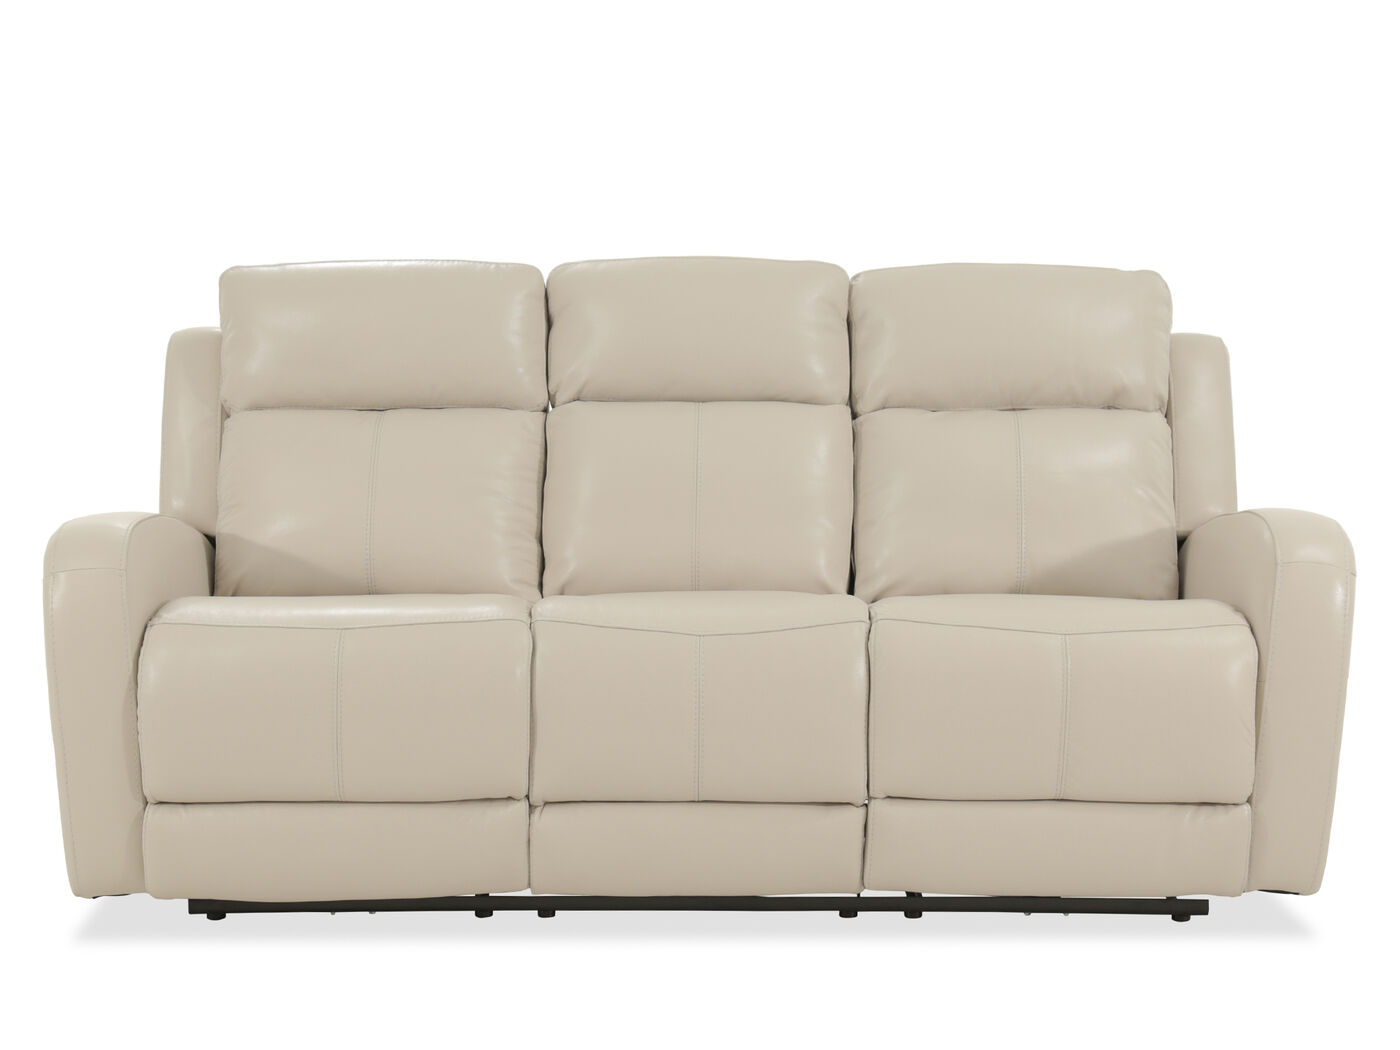 Leather 81 Power Reclining Sofa In Cream Mathis Brothers Furniture ~ Cream Leather Reclining Sofa